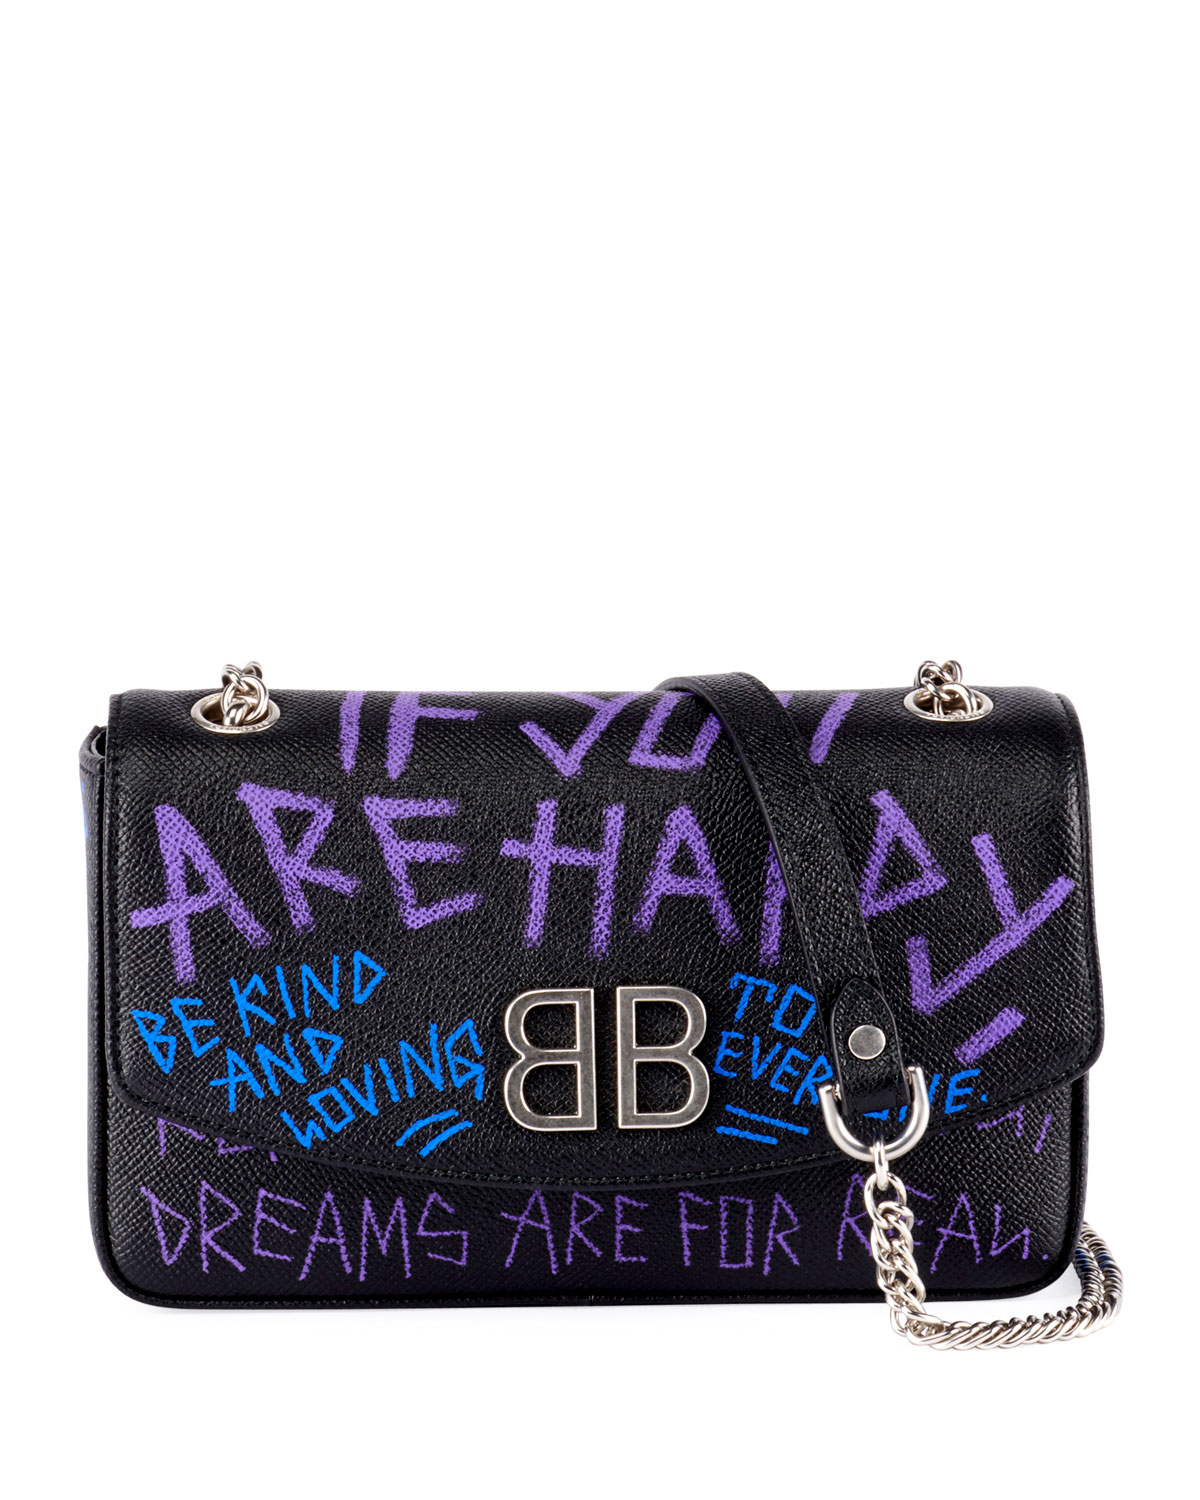 BB 'If you are happy' Graffiti Leather Wallet on Chain